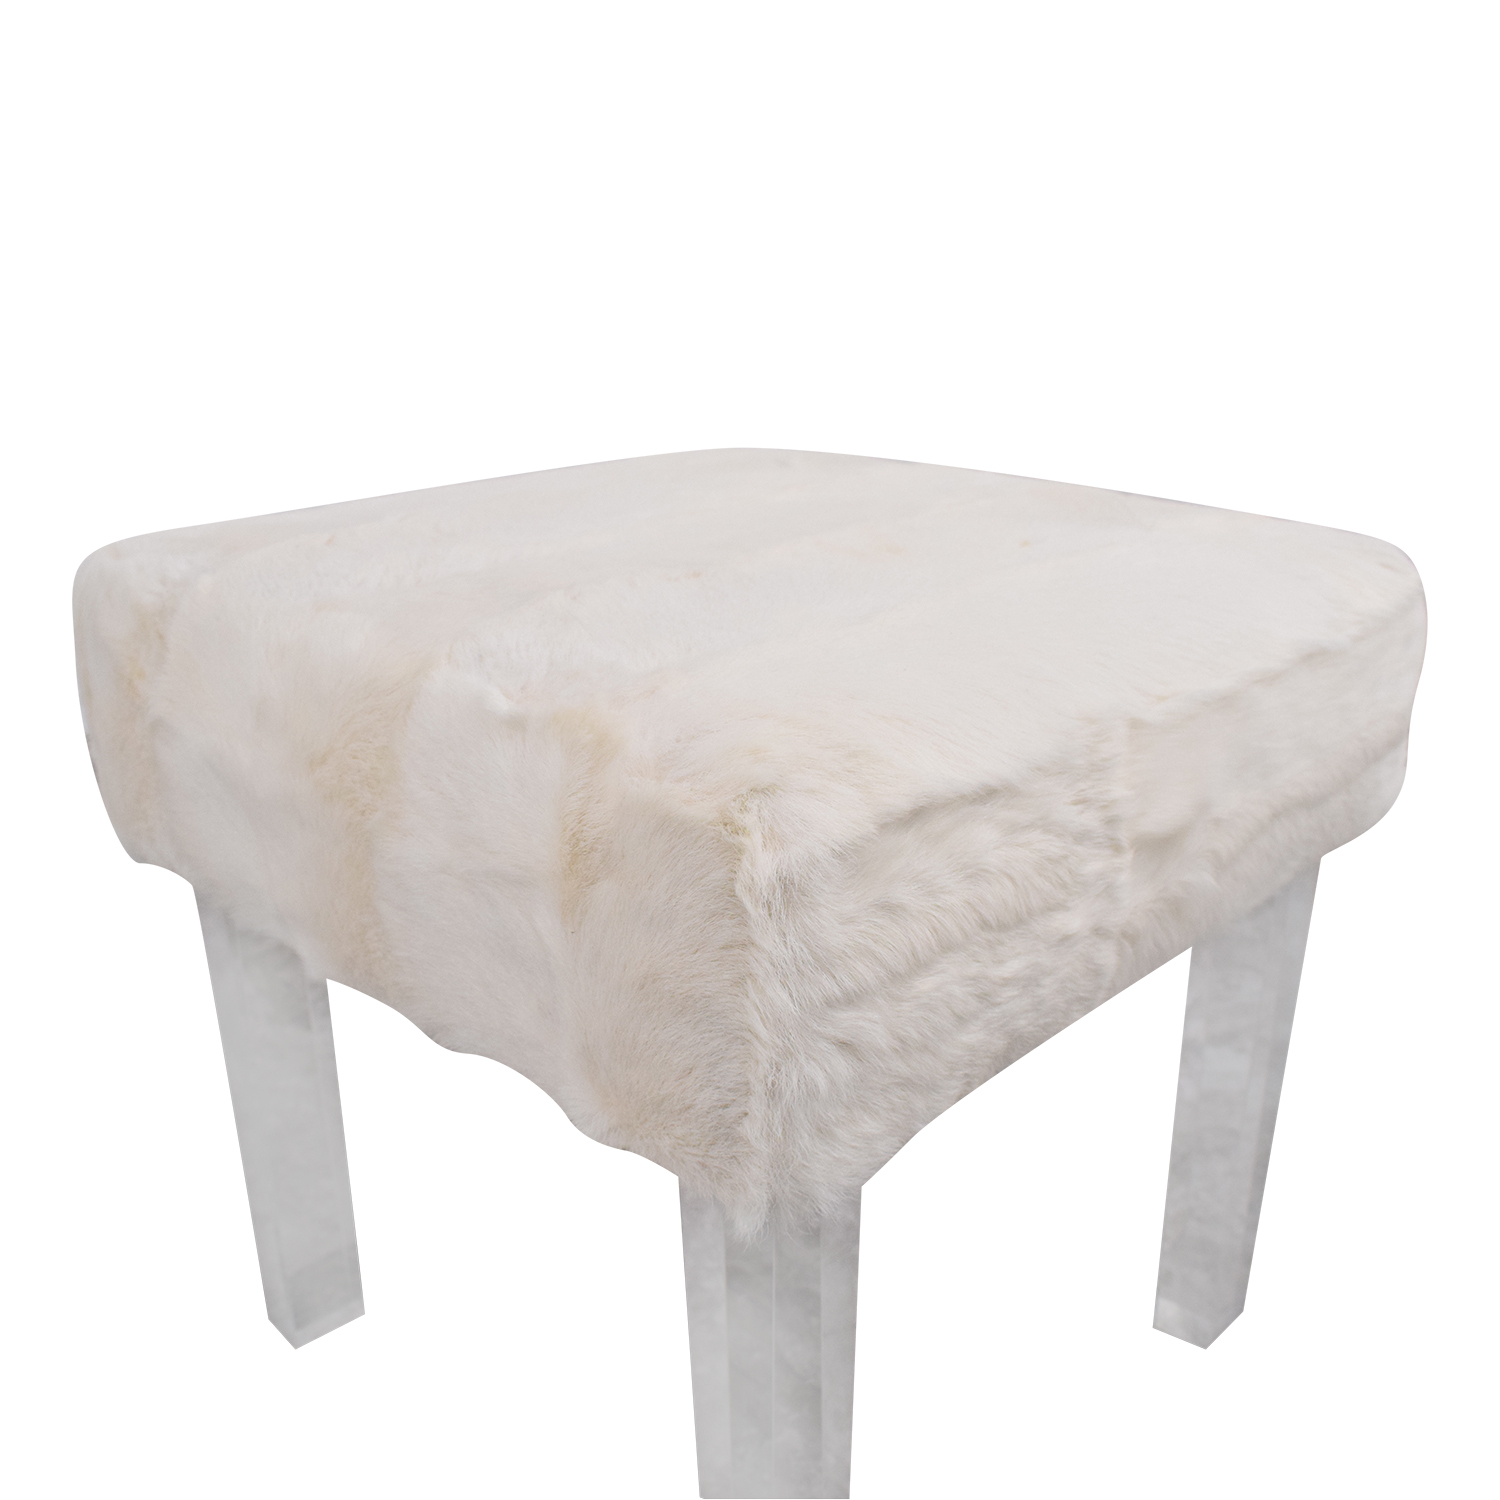 Outpost Original Outpost Original Lucite Bench with Fur price